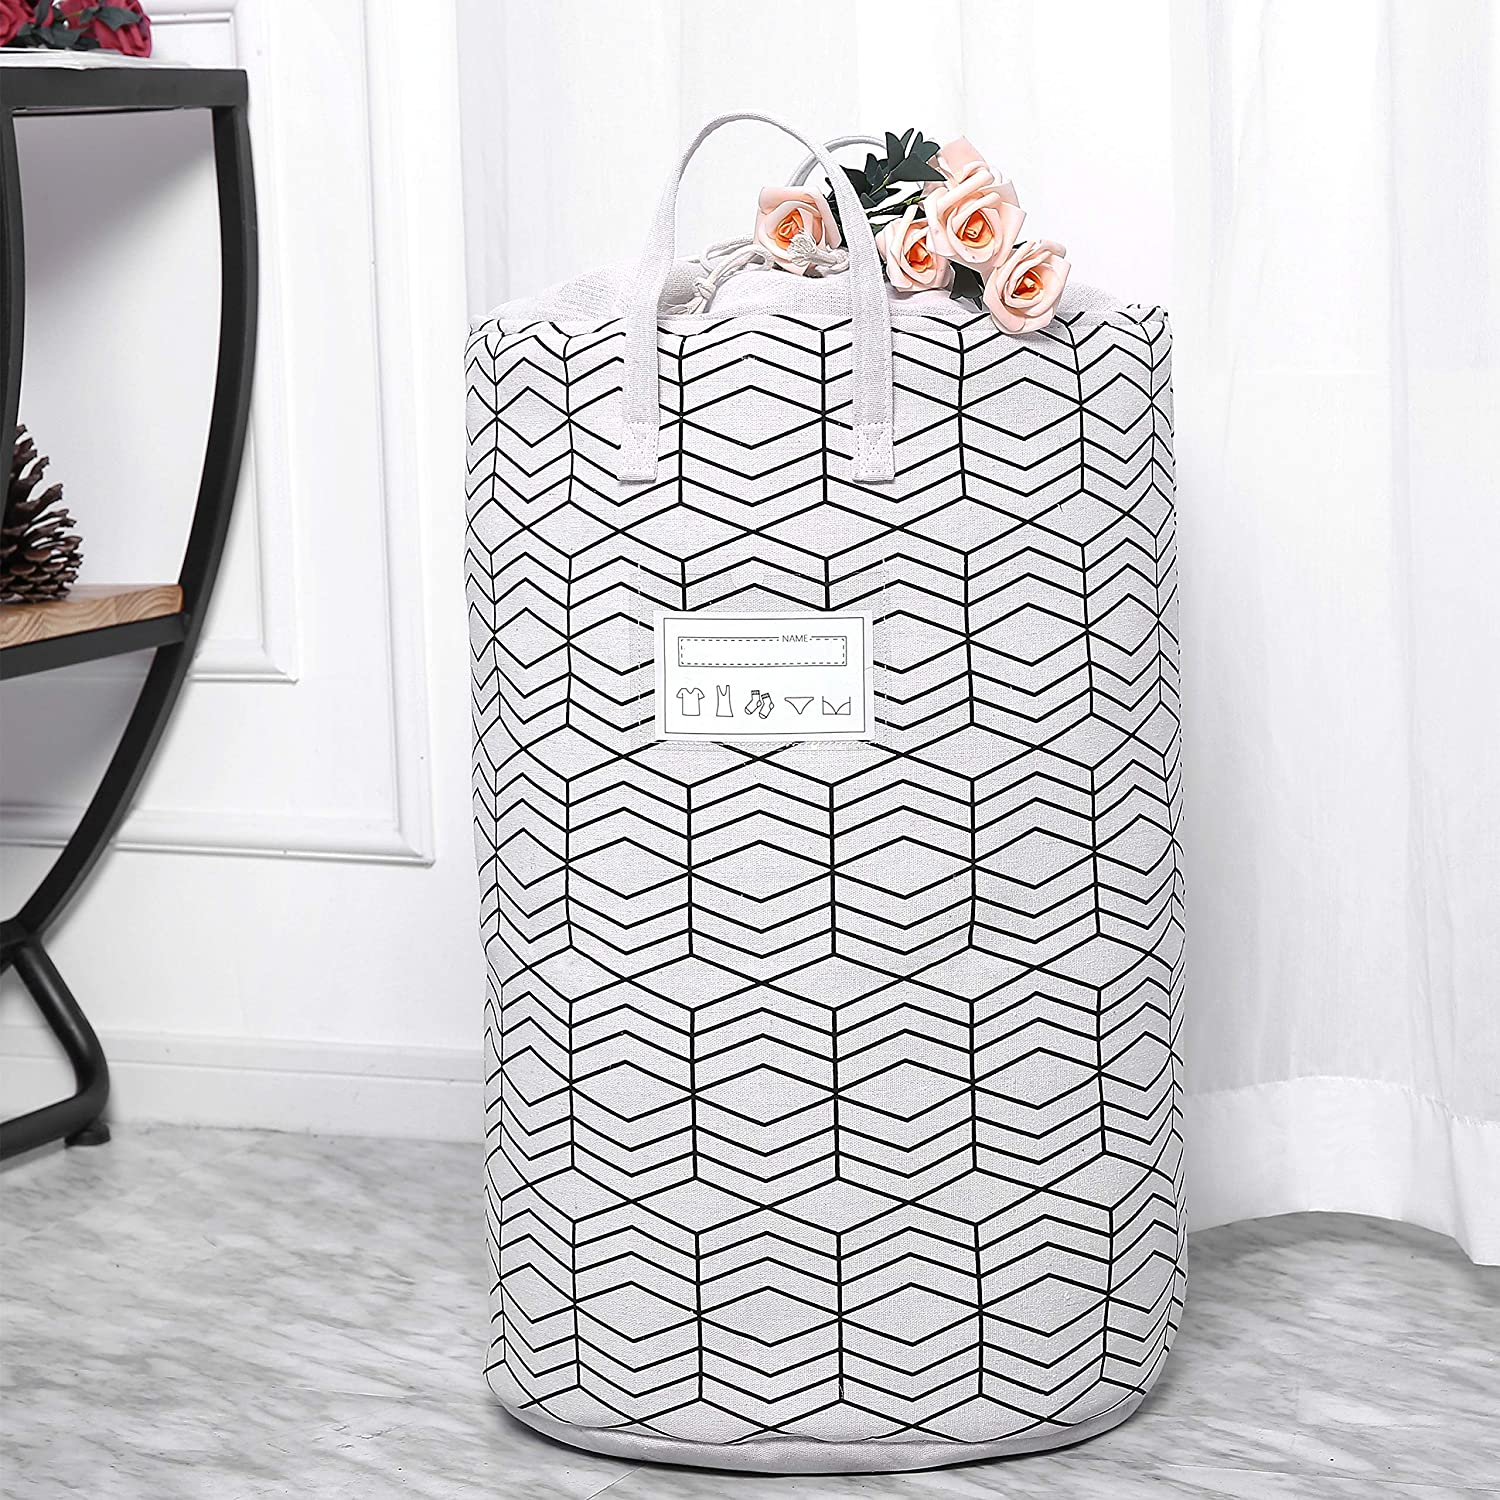 home decor ideas - cute laundry hamper with top closure